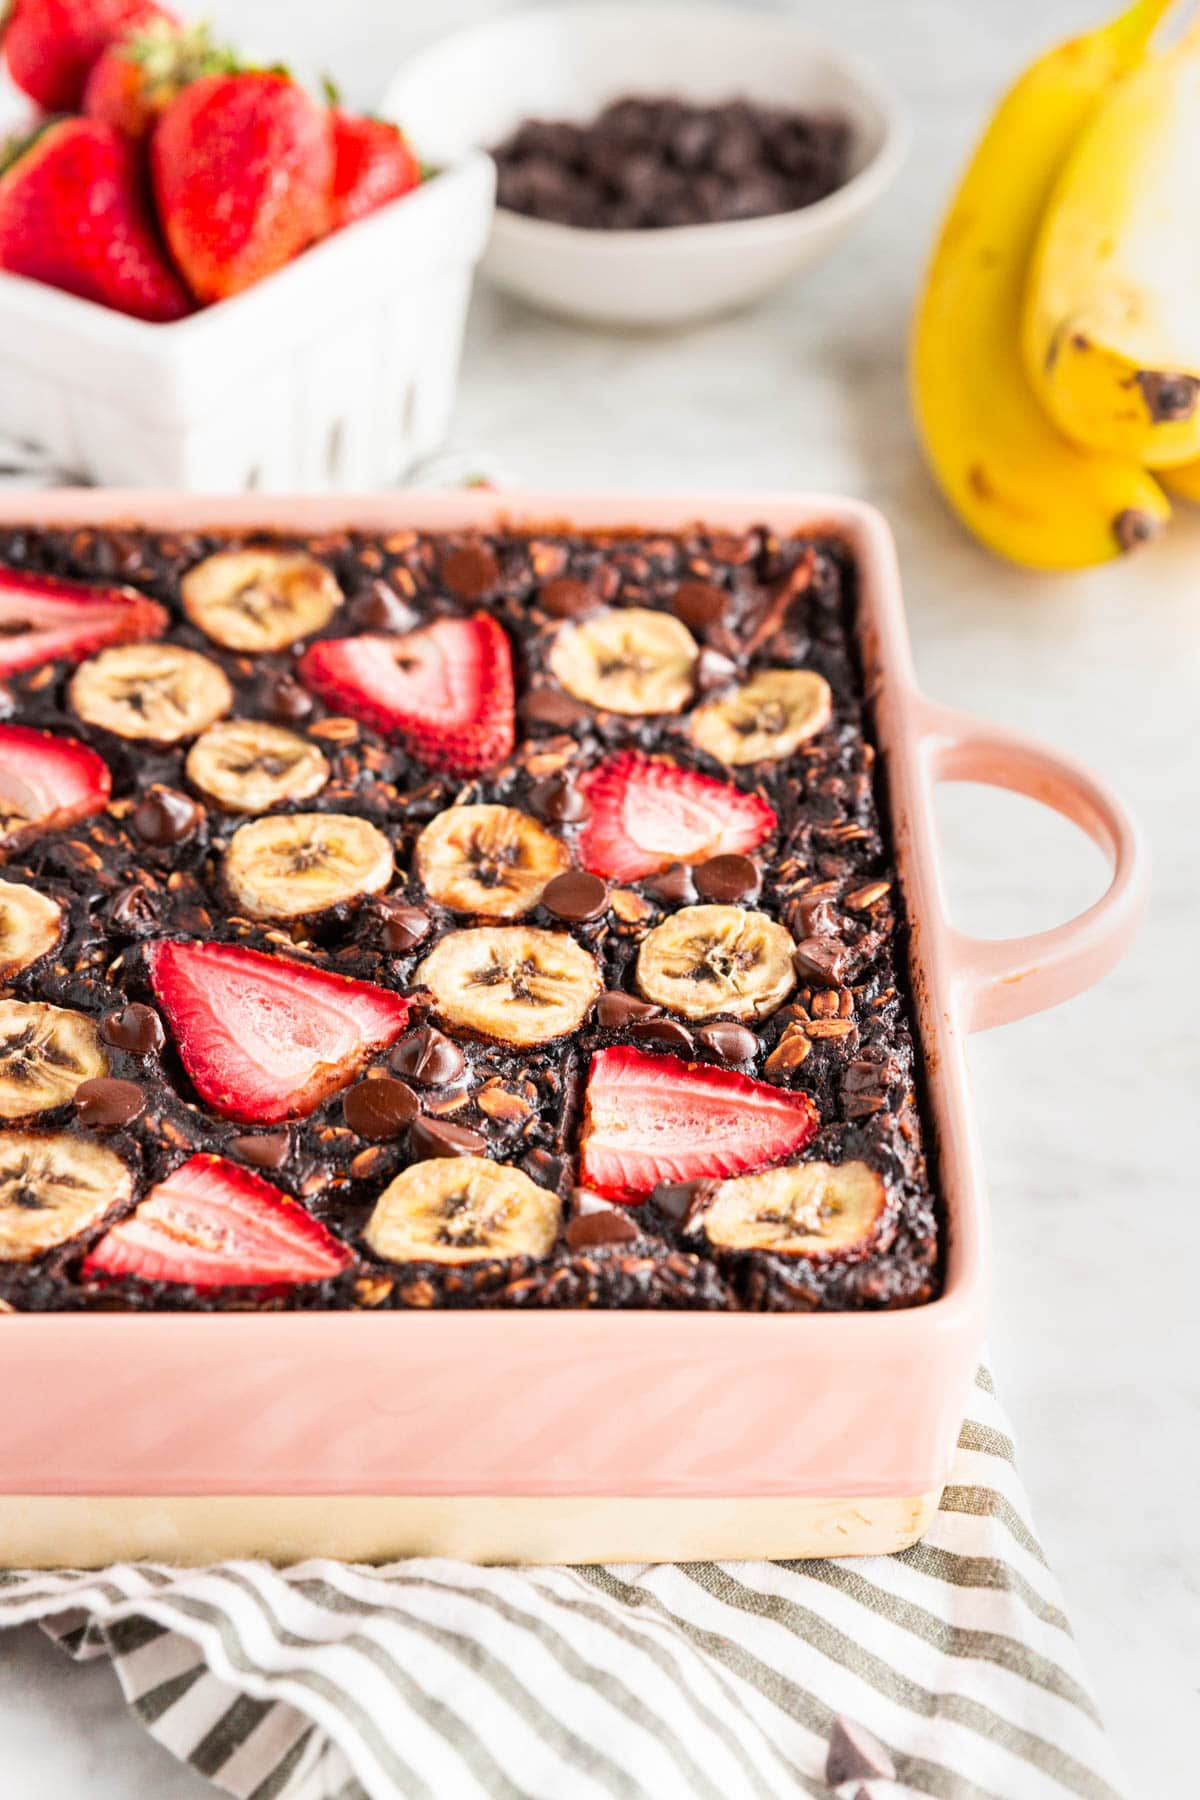 A photo of a pink baking dish with chocolate baked oatmeal topped with sliced bananas and strawberries on top.